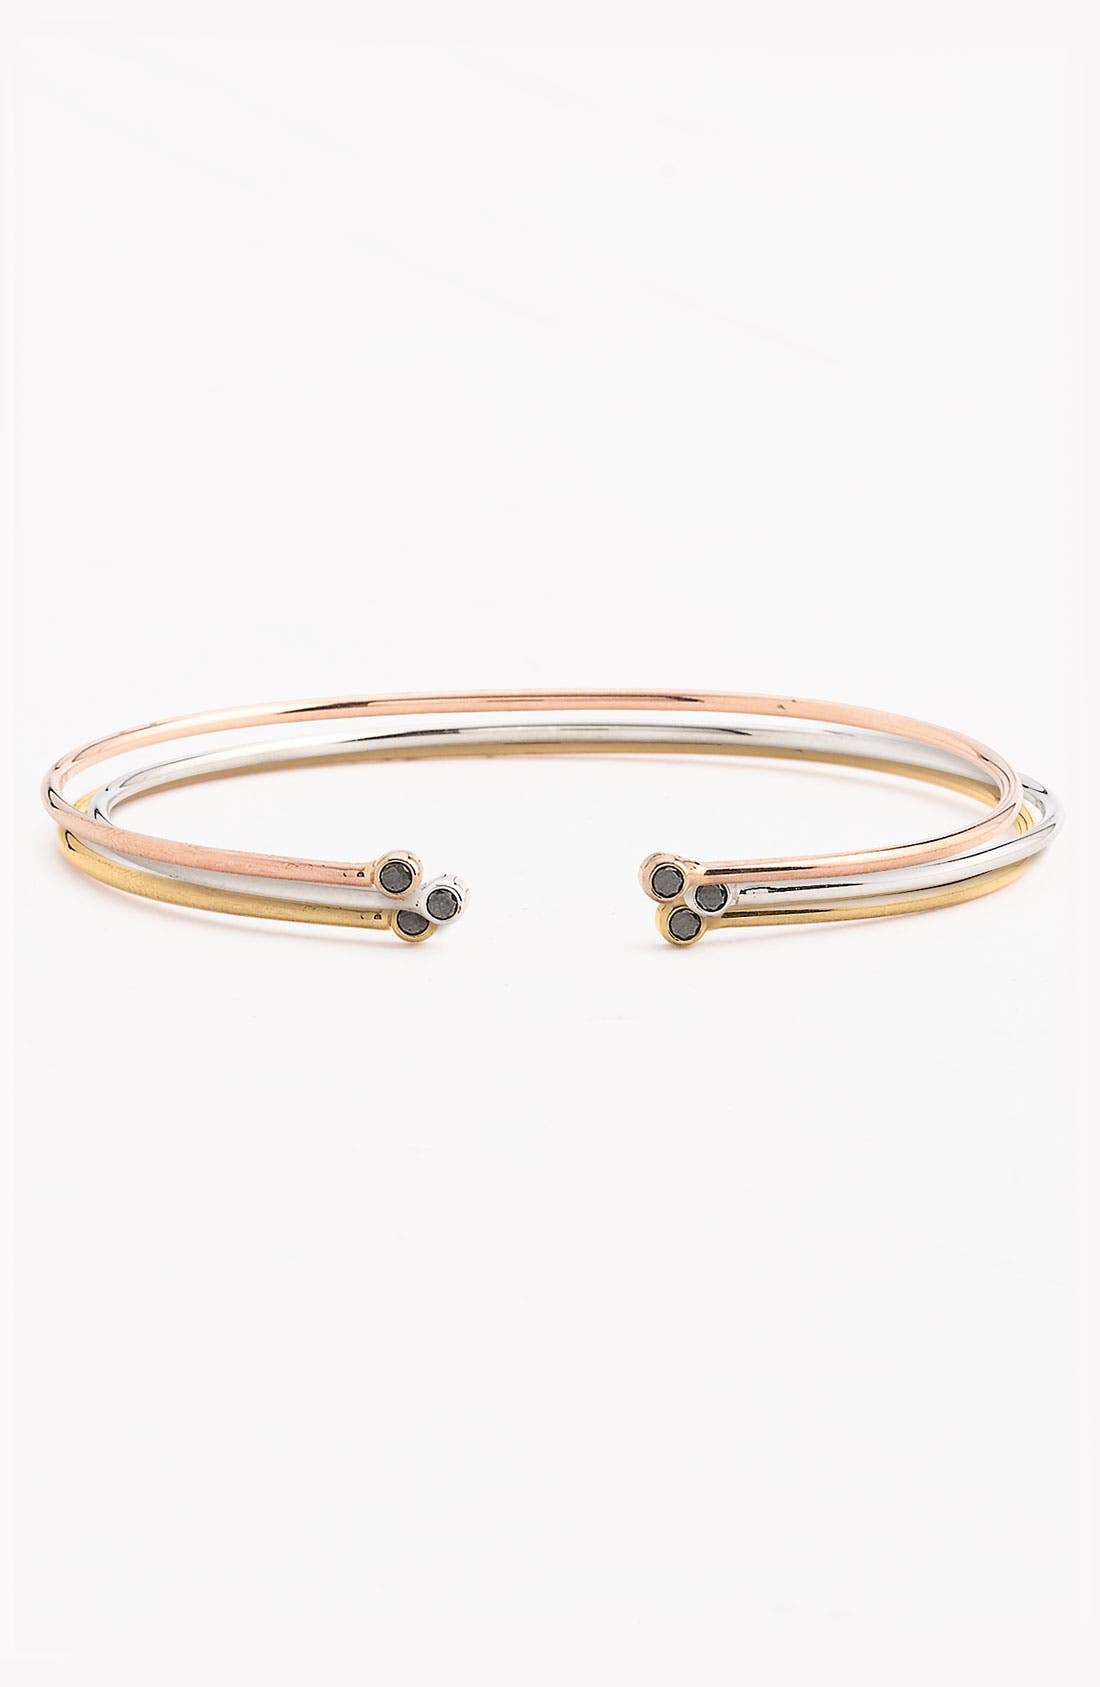 Alternate Image 1 Selected - Lana Jewelry 'Echo' Black Diamond Bracelet (Nordstrom Exclusive)